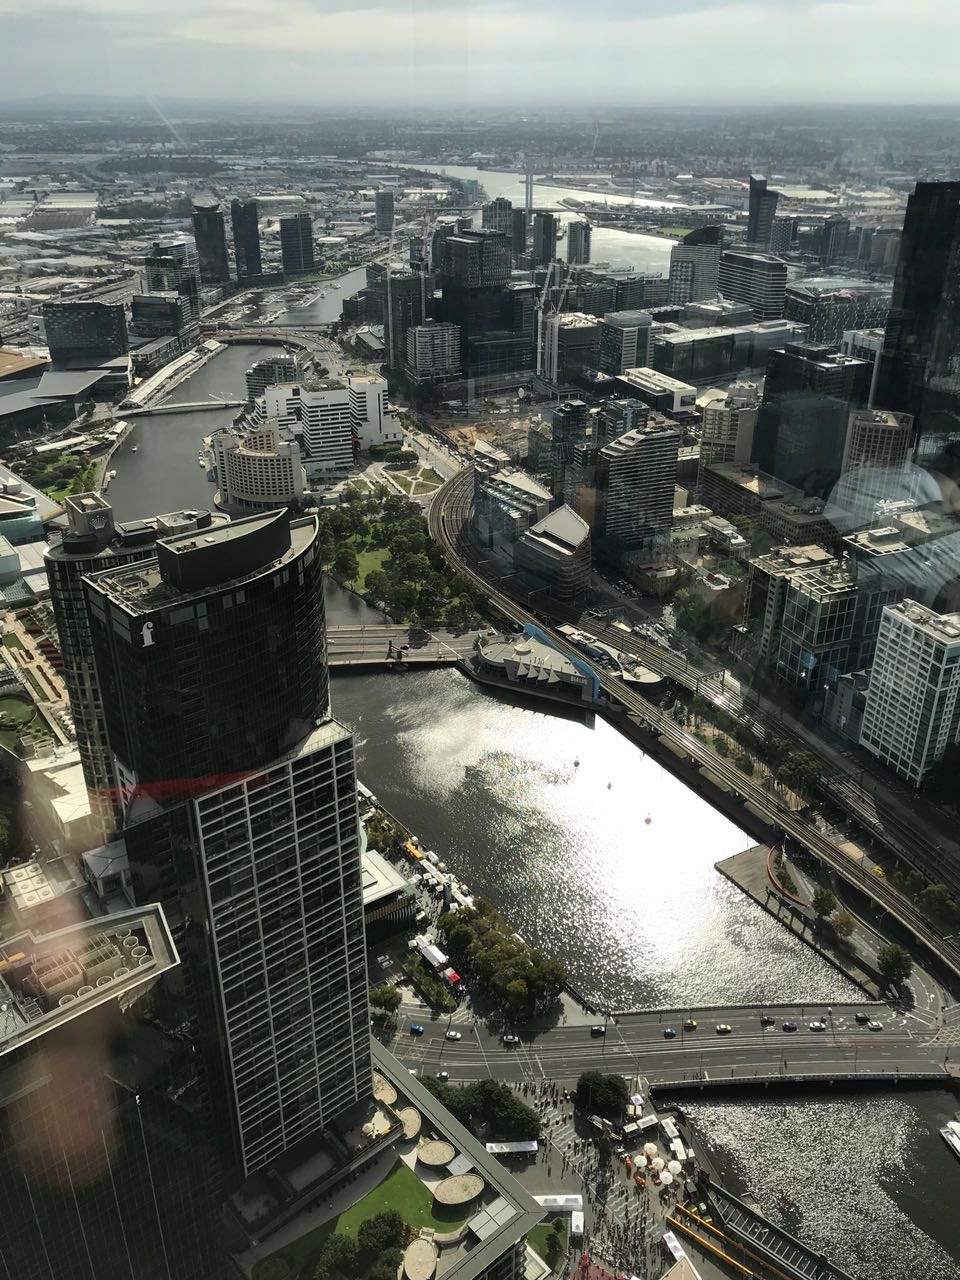 Melbourne with the Yarra river